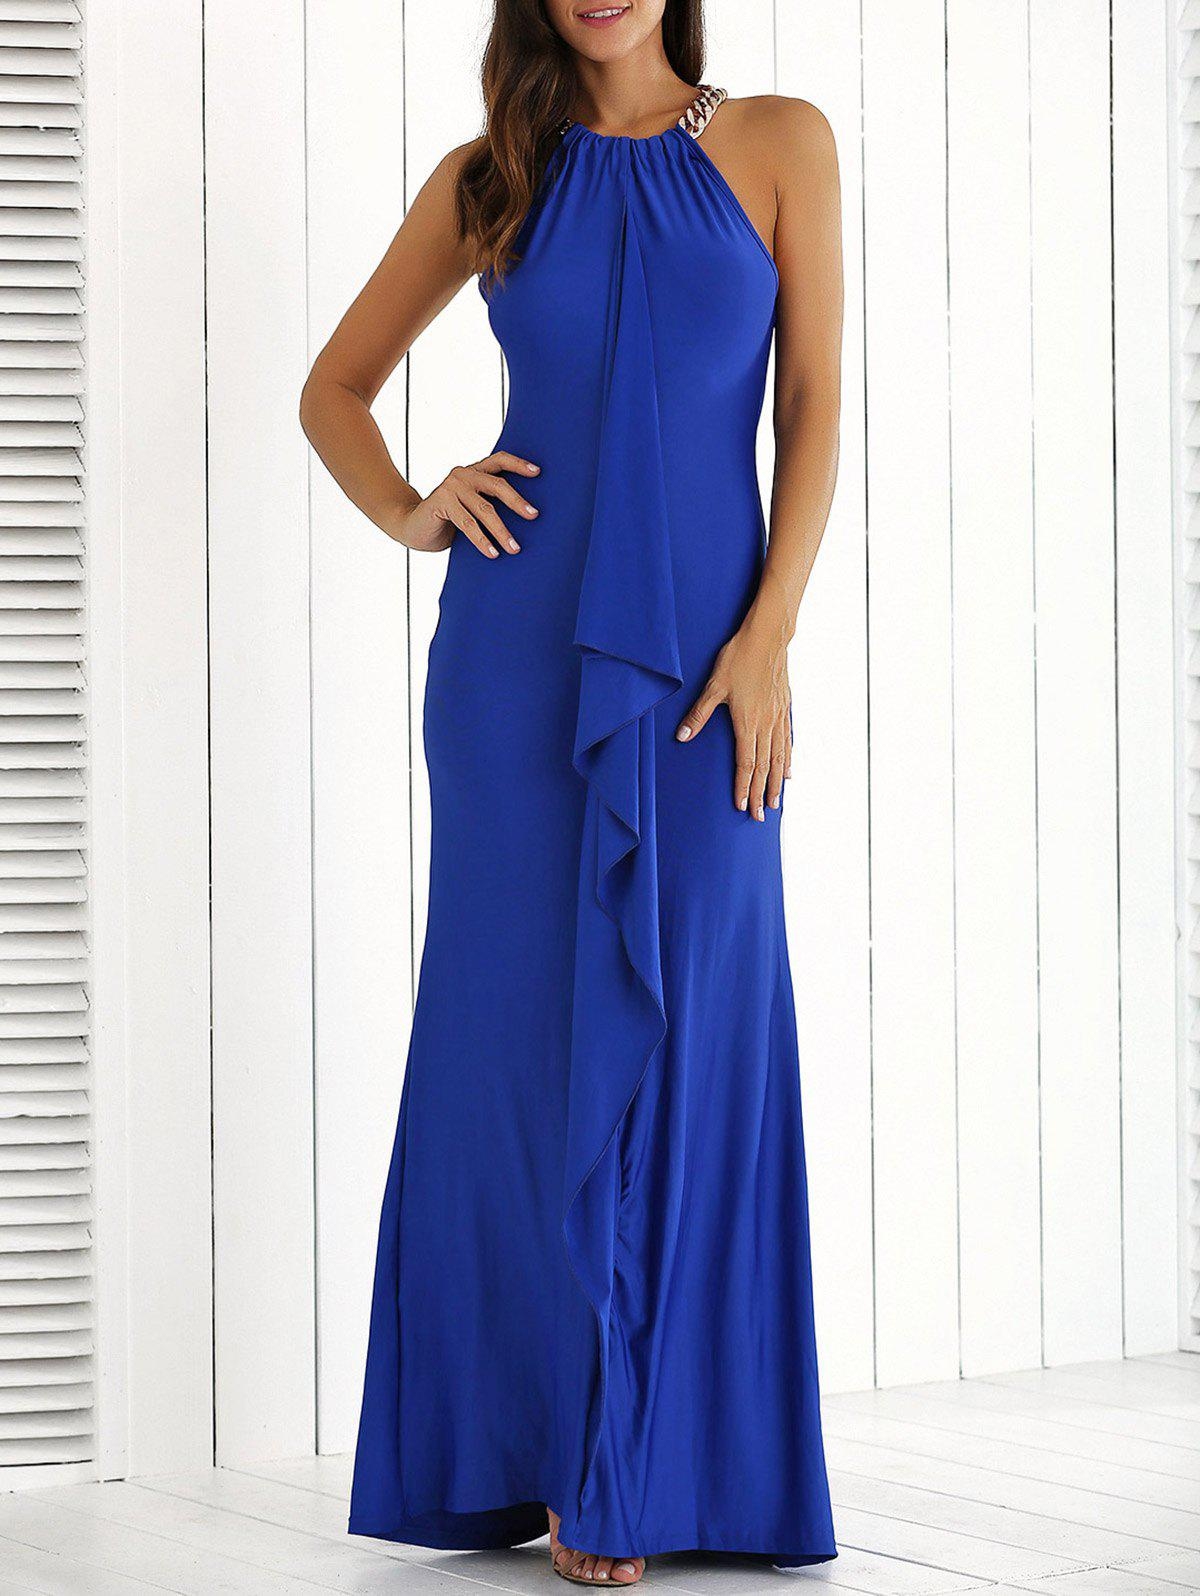 Ruffle Front Maxi Formal Evening Carpet DressWOMEN<br><br>Size: M; Color: ROYAL BLUE; Style: Casual; Material: Polyester; Silhouette: Sheath; Dresses Length: Floor-Length; Neckline: Jewel Neck; Sleeve Length: Sleeveless; Pattern Type: Solid; With Belt: No; Season: Summer; Weight: 0.4700kg; Package Contents: 1 x Dress;